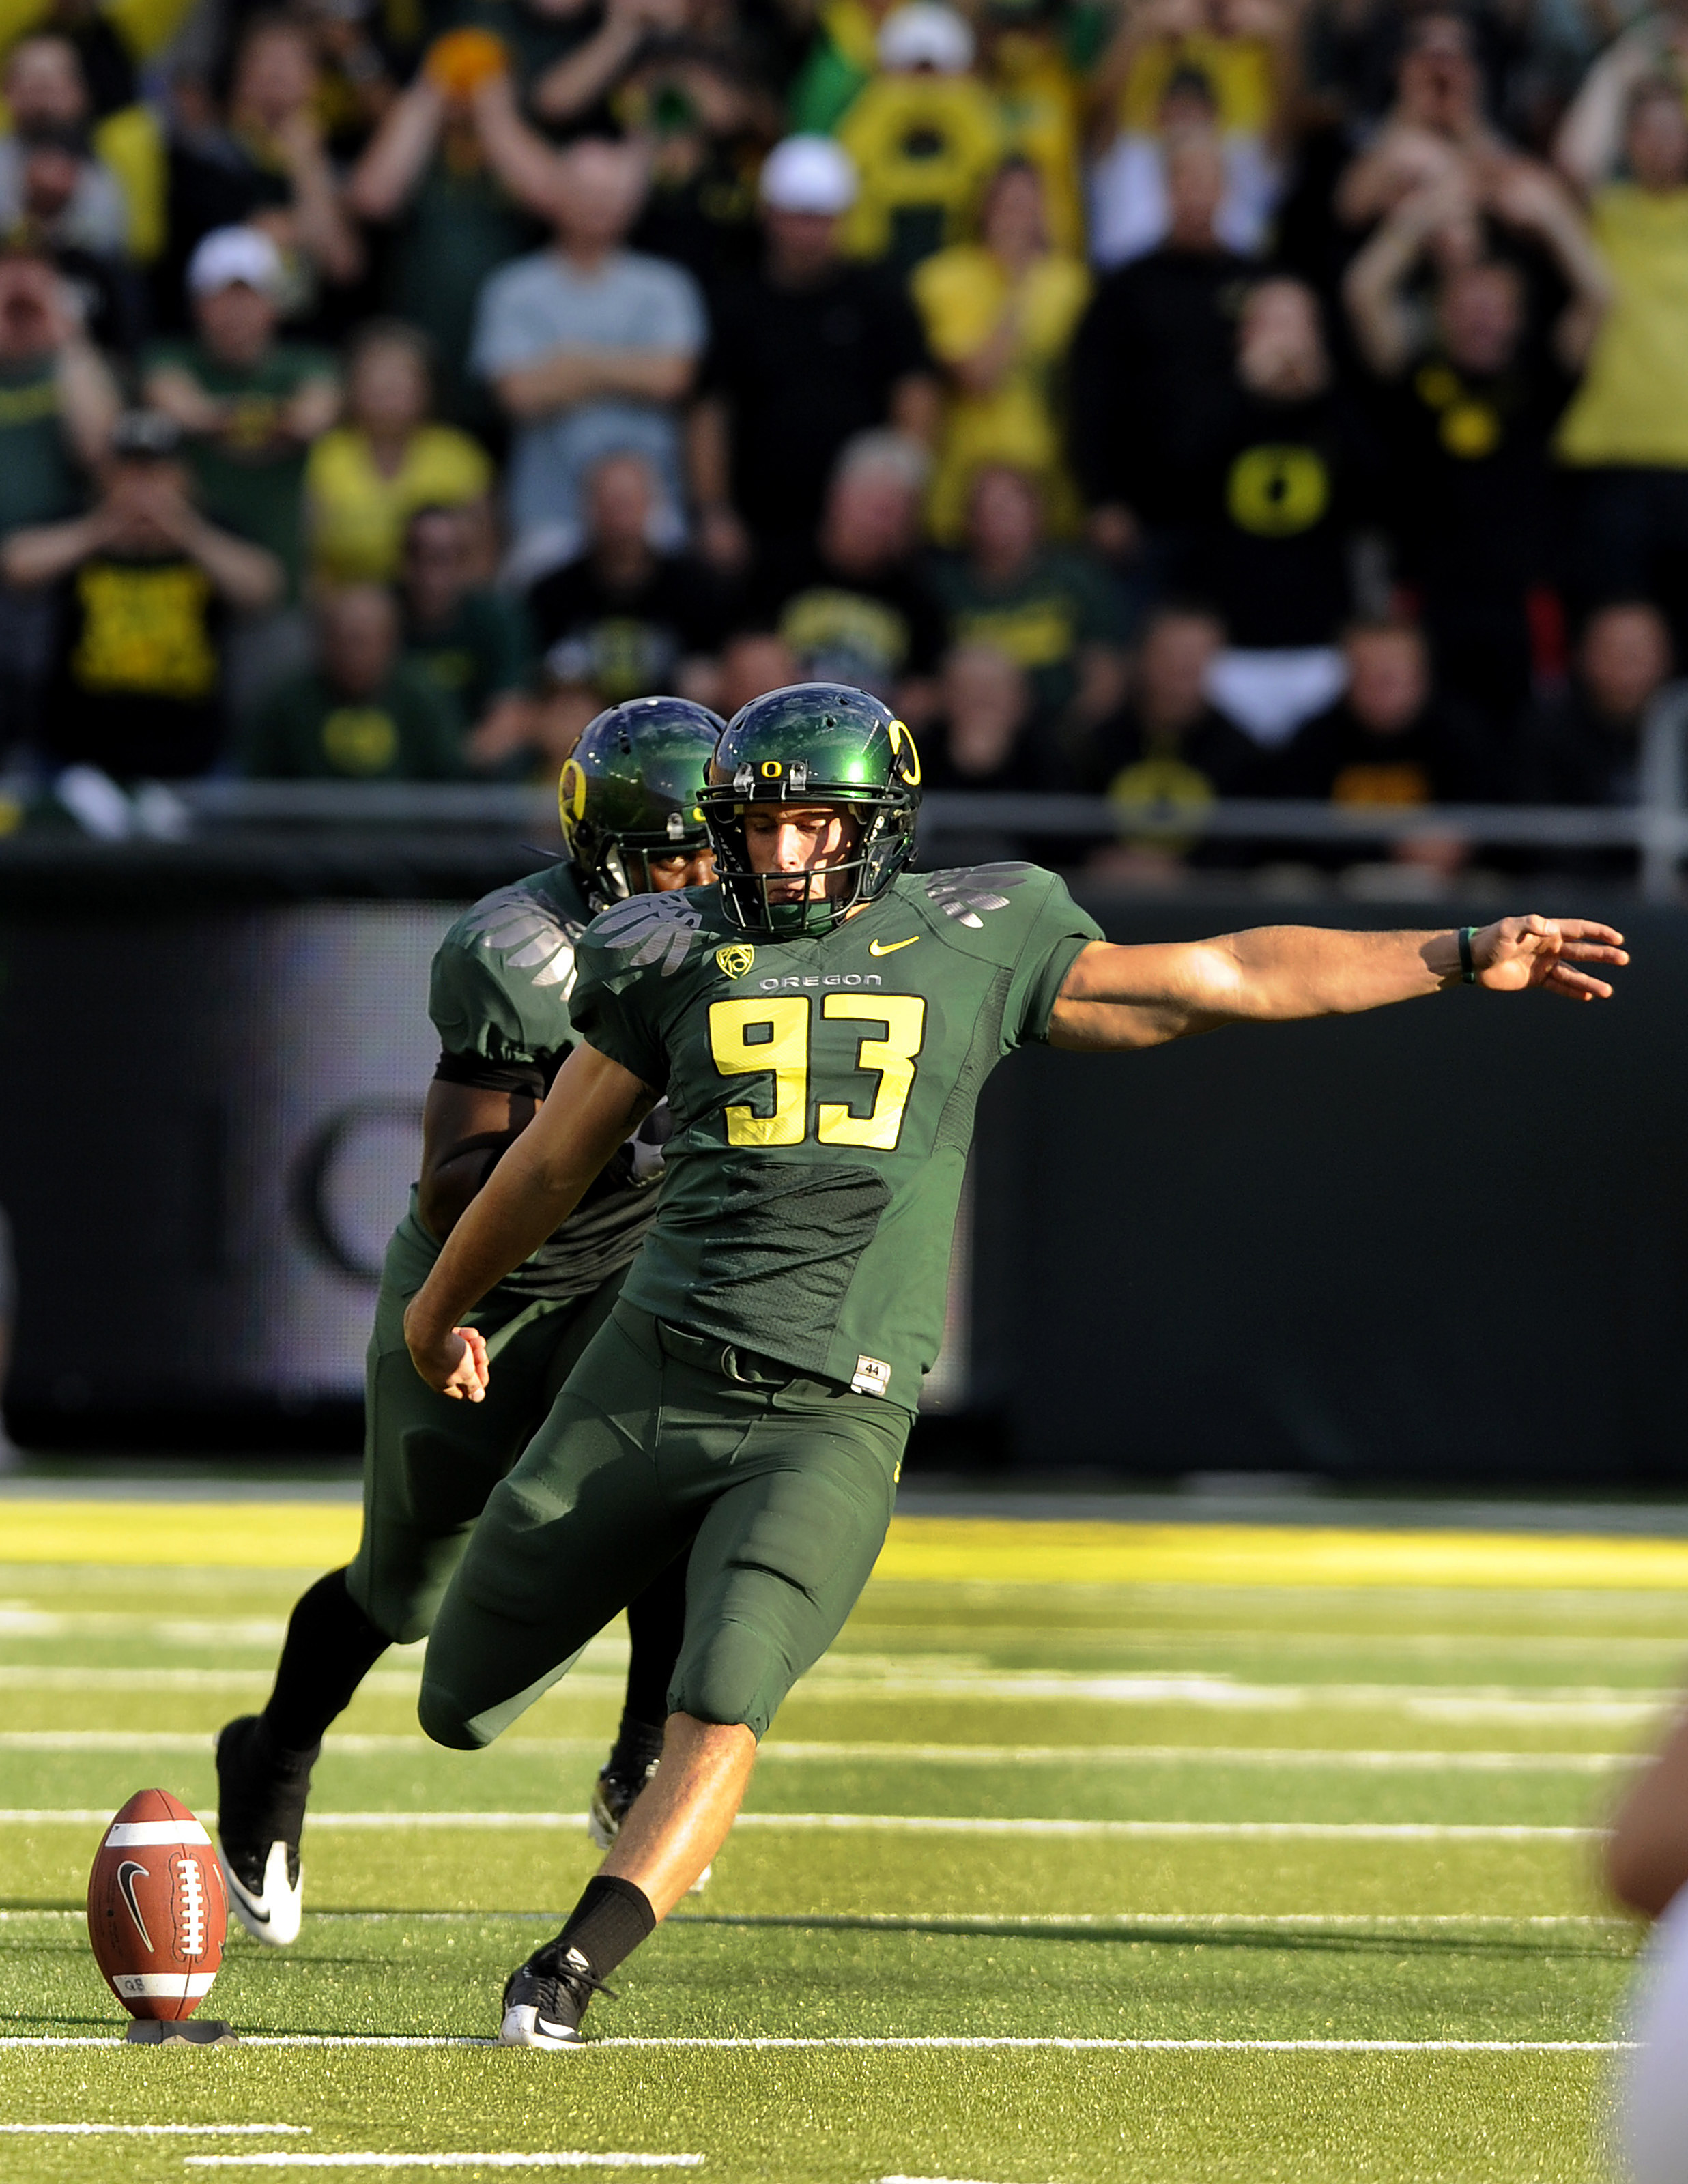 EUGENE, OR - OCTOBER 2: Kicker Rob Beard #93 of the Oregon Ducks kicks a kickoff in the first quarter of he game against the Stanford Cardinal at Autzen Stadium on October 2, 2010 in Eugene, Oregon. Oregon won the game 52-31. (Photo by Steve Dykes/Getty I